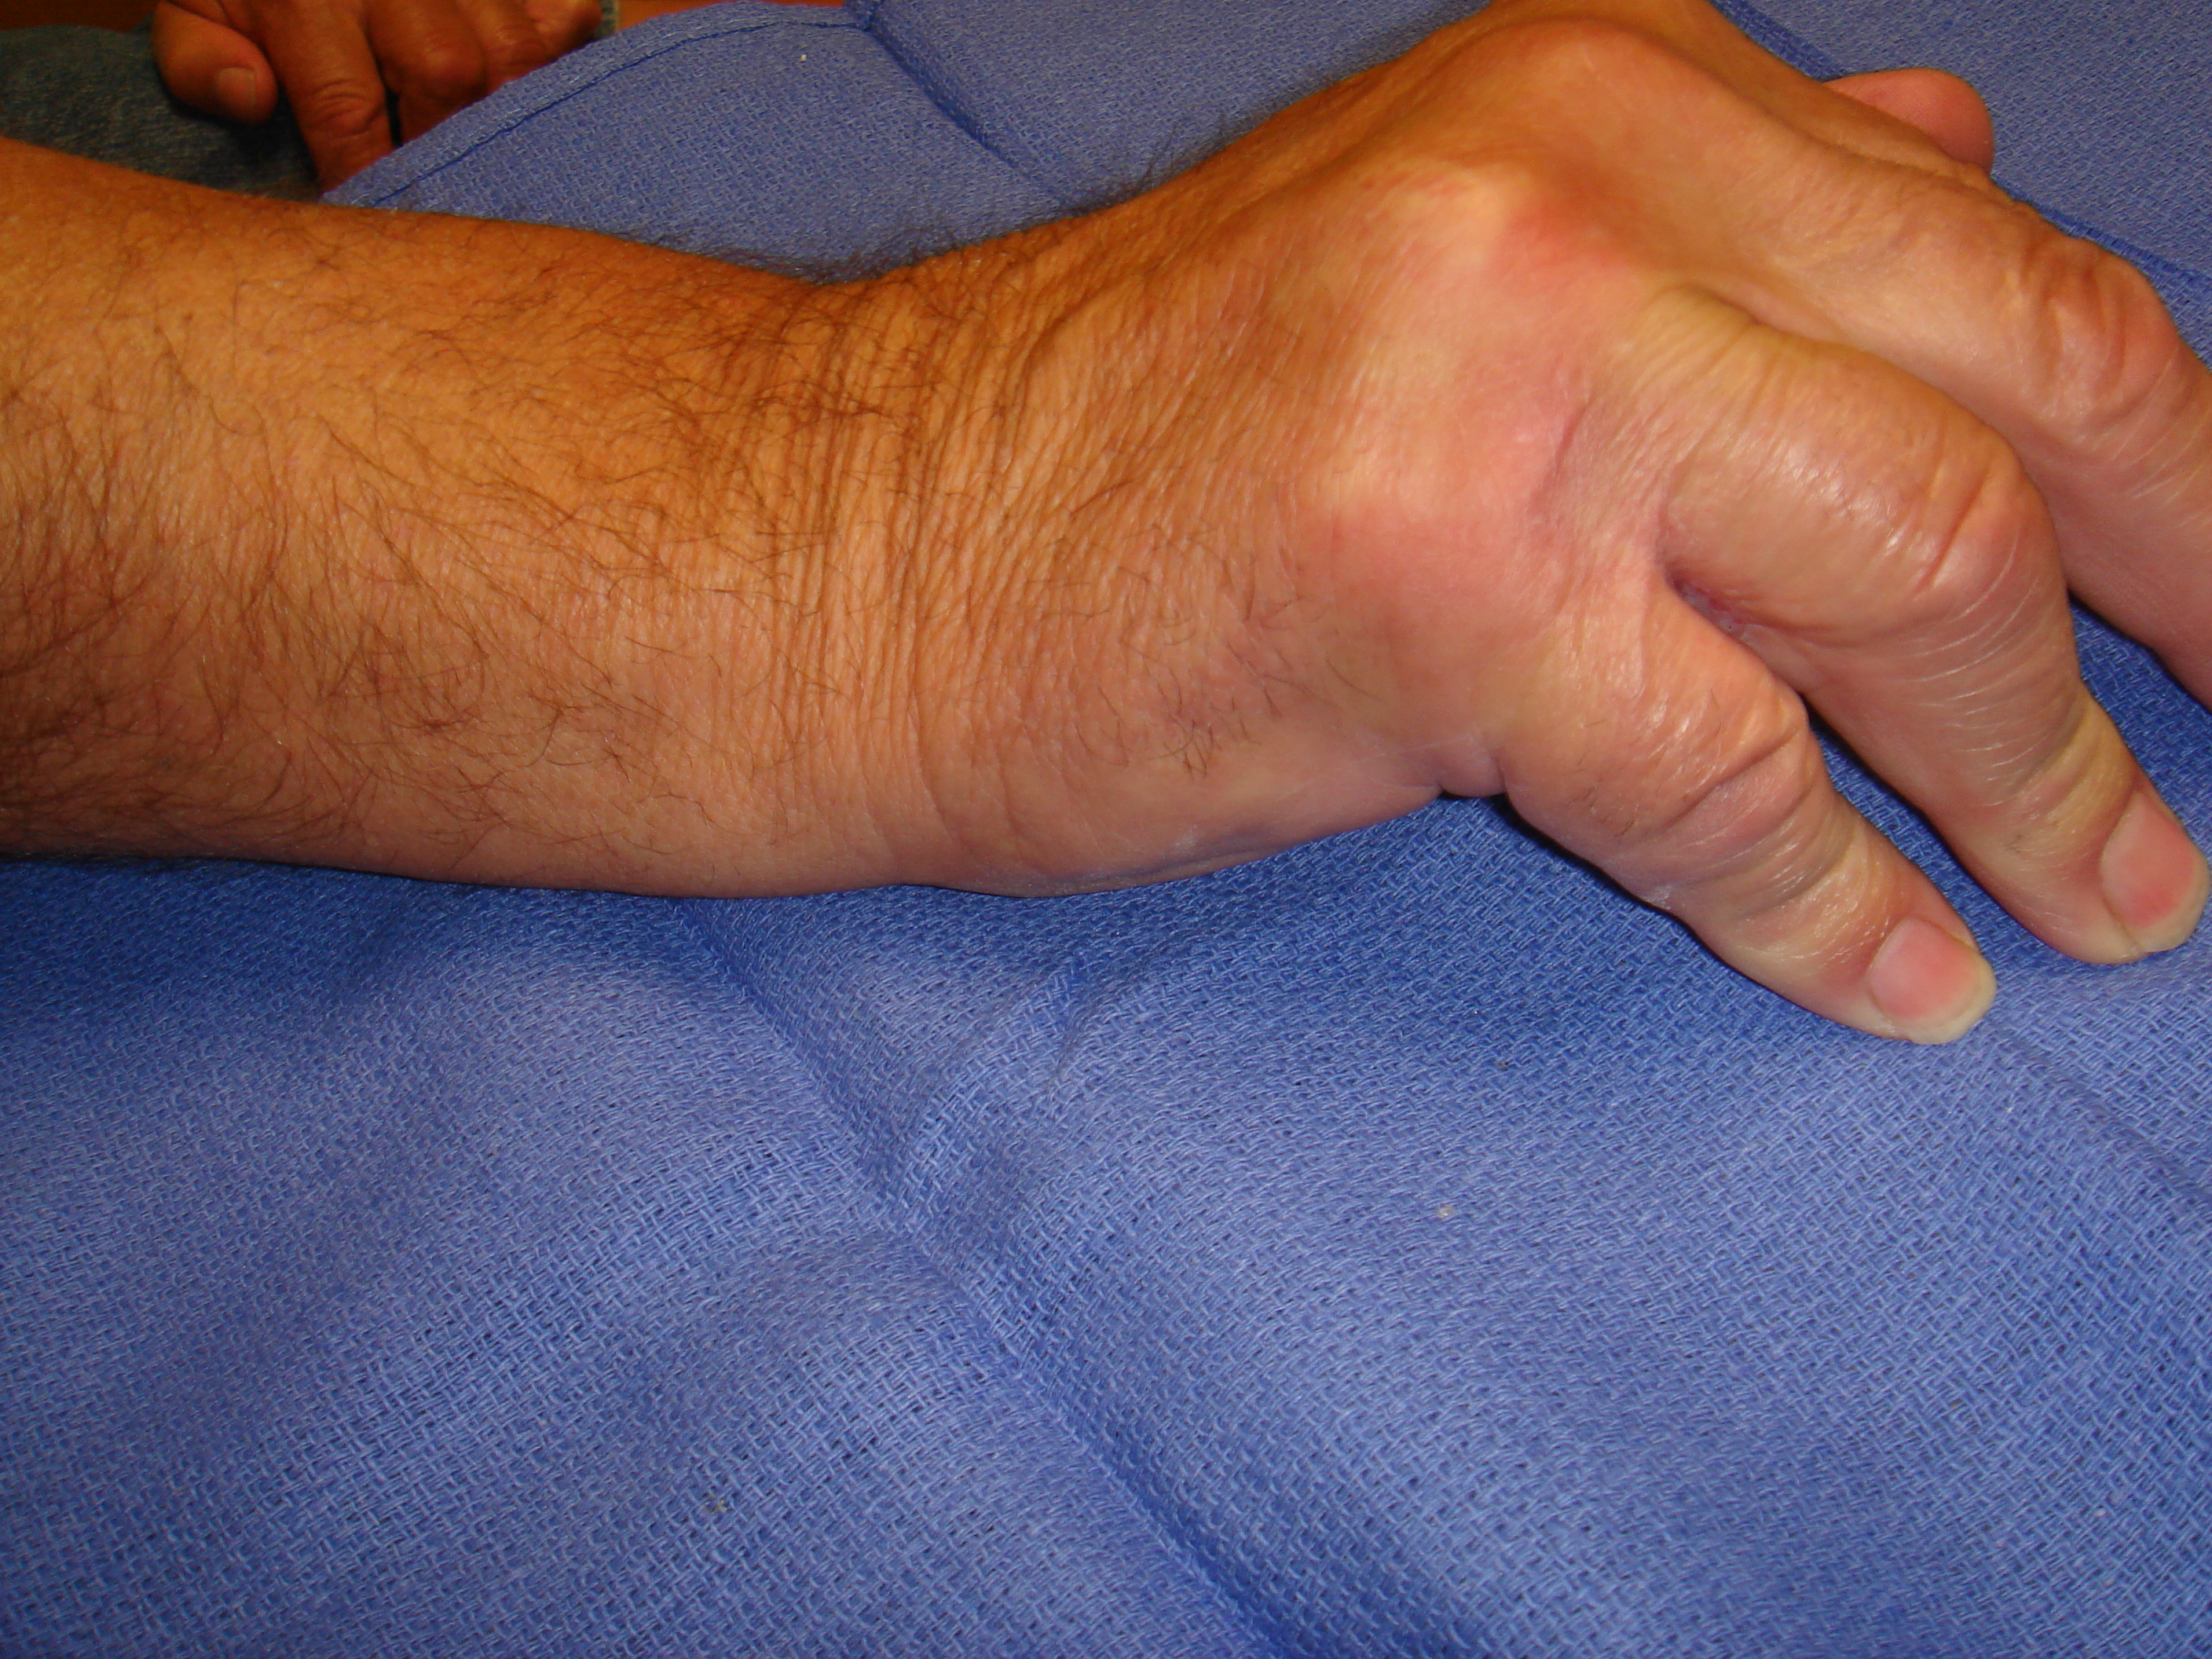 Figure 5b. The right hand of a 70-year-old man with significant, dysfunctional MP joint contractures of the ring and little fingers. He also had contractures of the contralateral left hand, but treatment was started for his dominant right side.